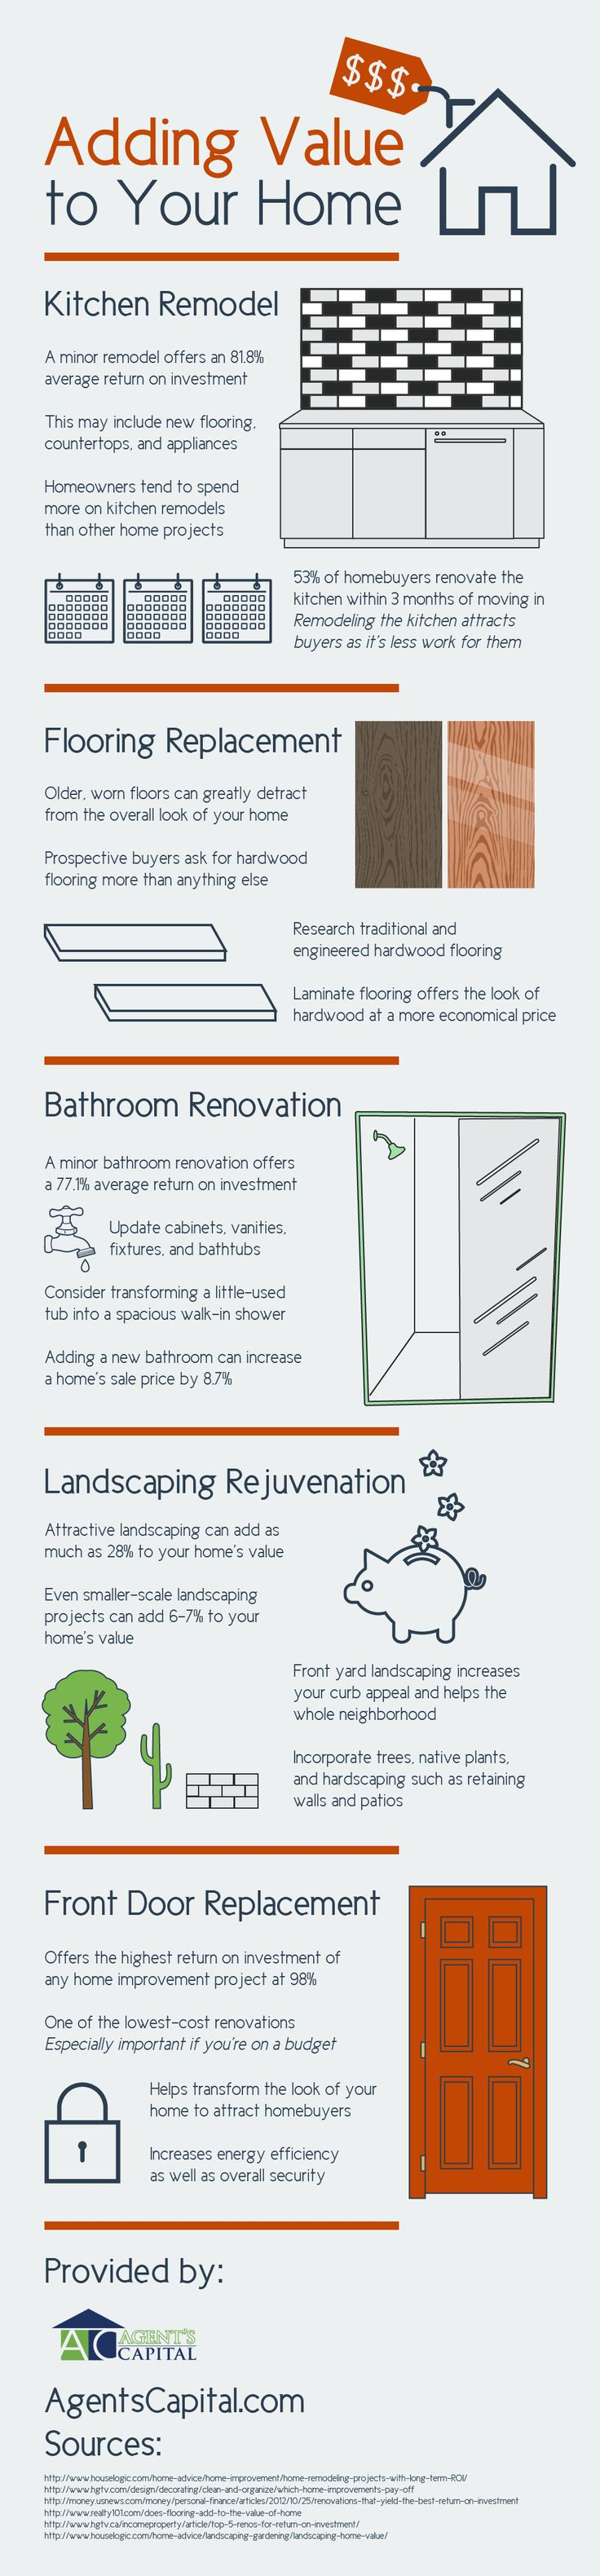 492 best Home Improvement Infographics images on Pinterest ...